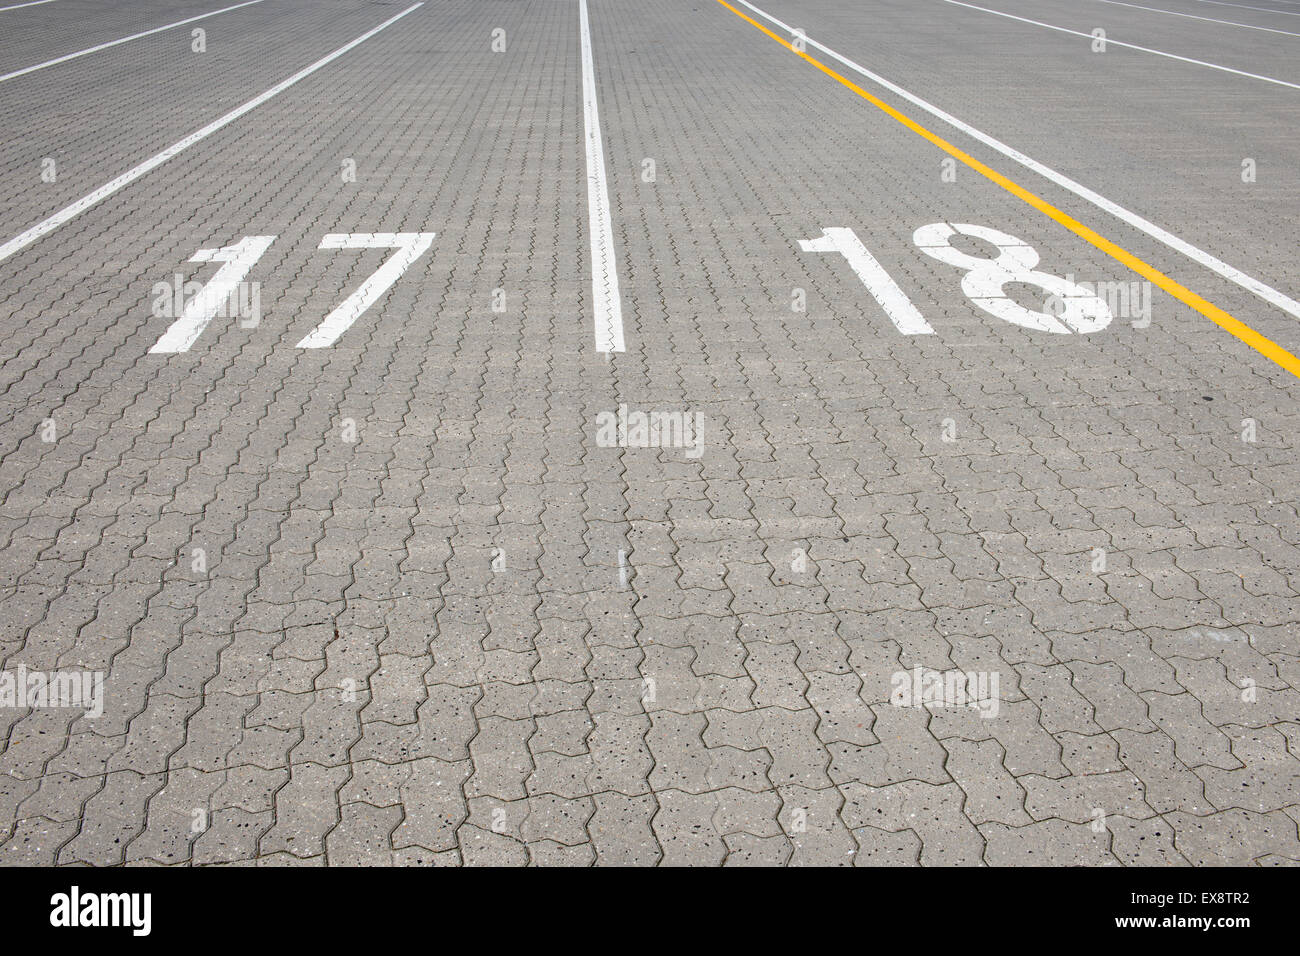 Ferry lane number 17 and 18 painted white on paving stone Stock Photo